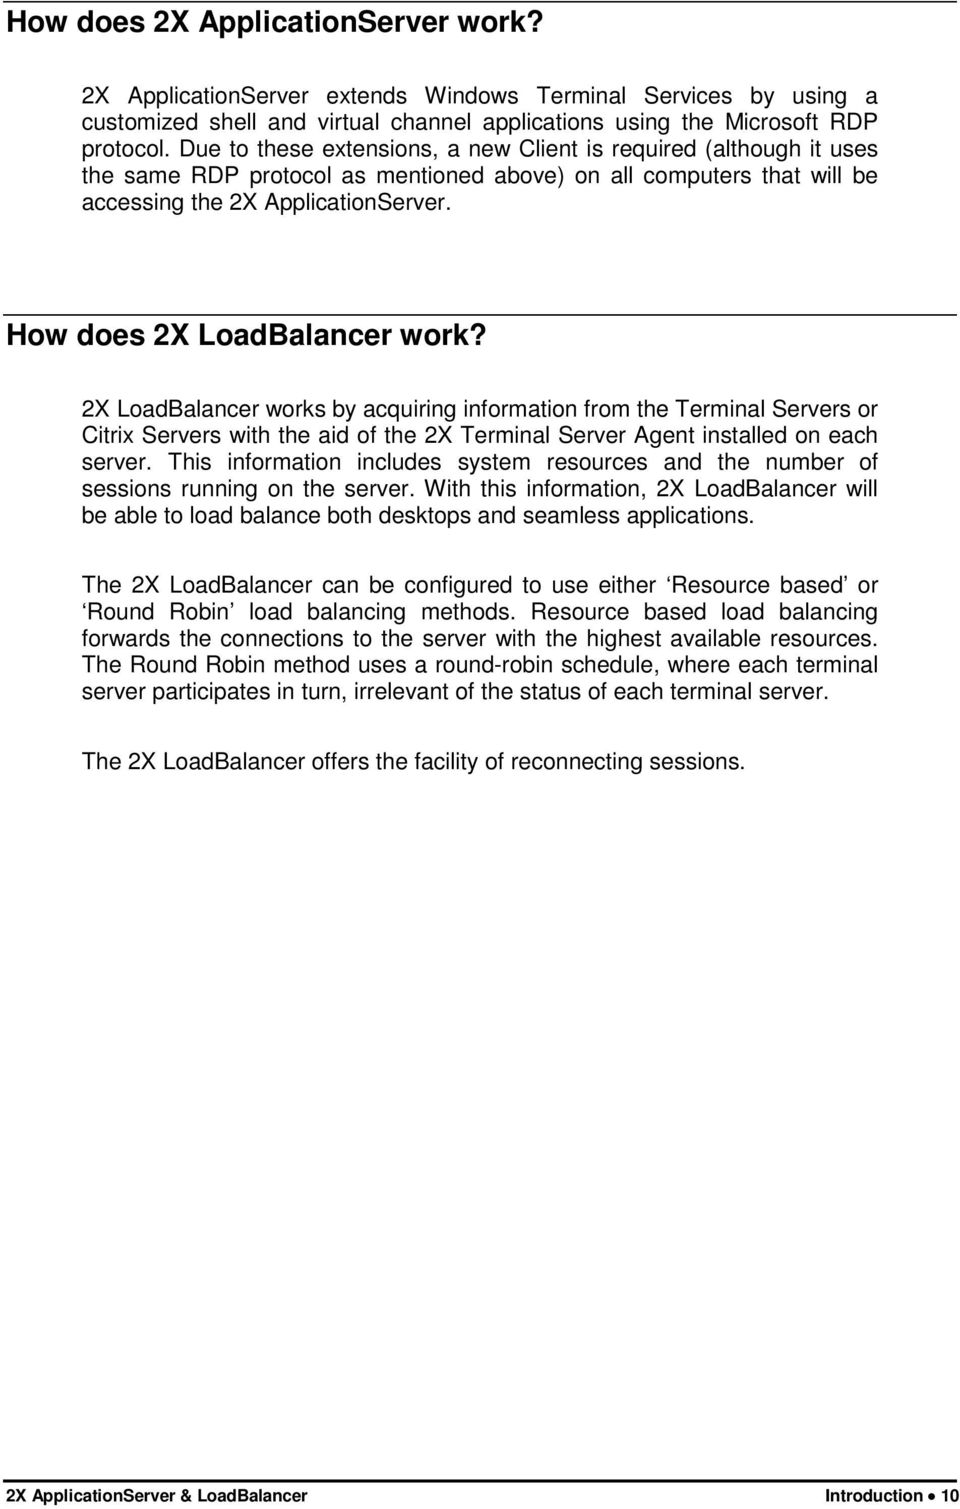 How does 2X LoadBalancer work? 2X LoadBalancer works by acquiring information from the Terminal Servers or Citrix Servers with the aid of the 2X Terminal Server Agent installed on each server.